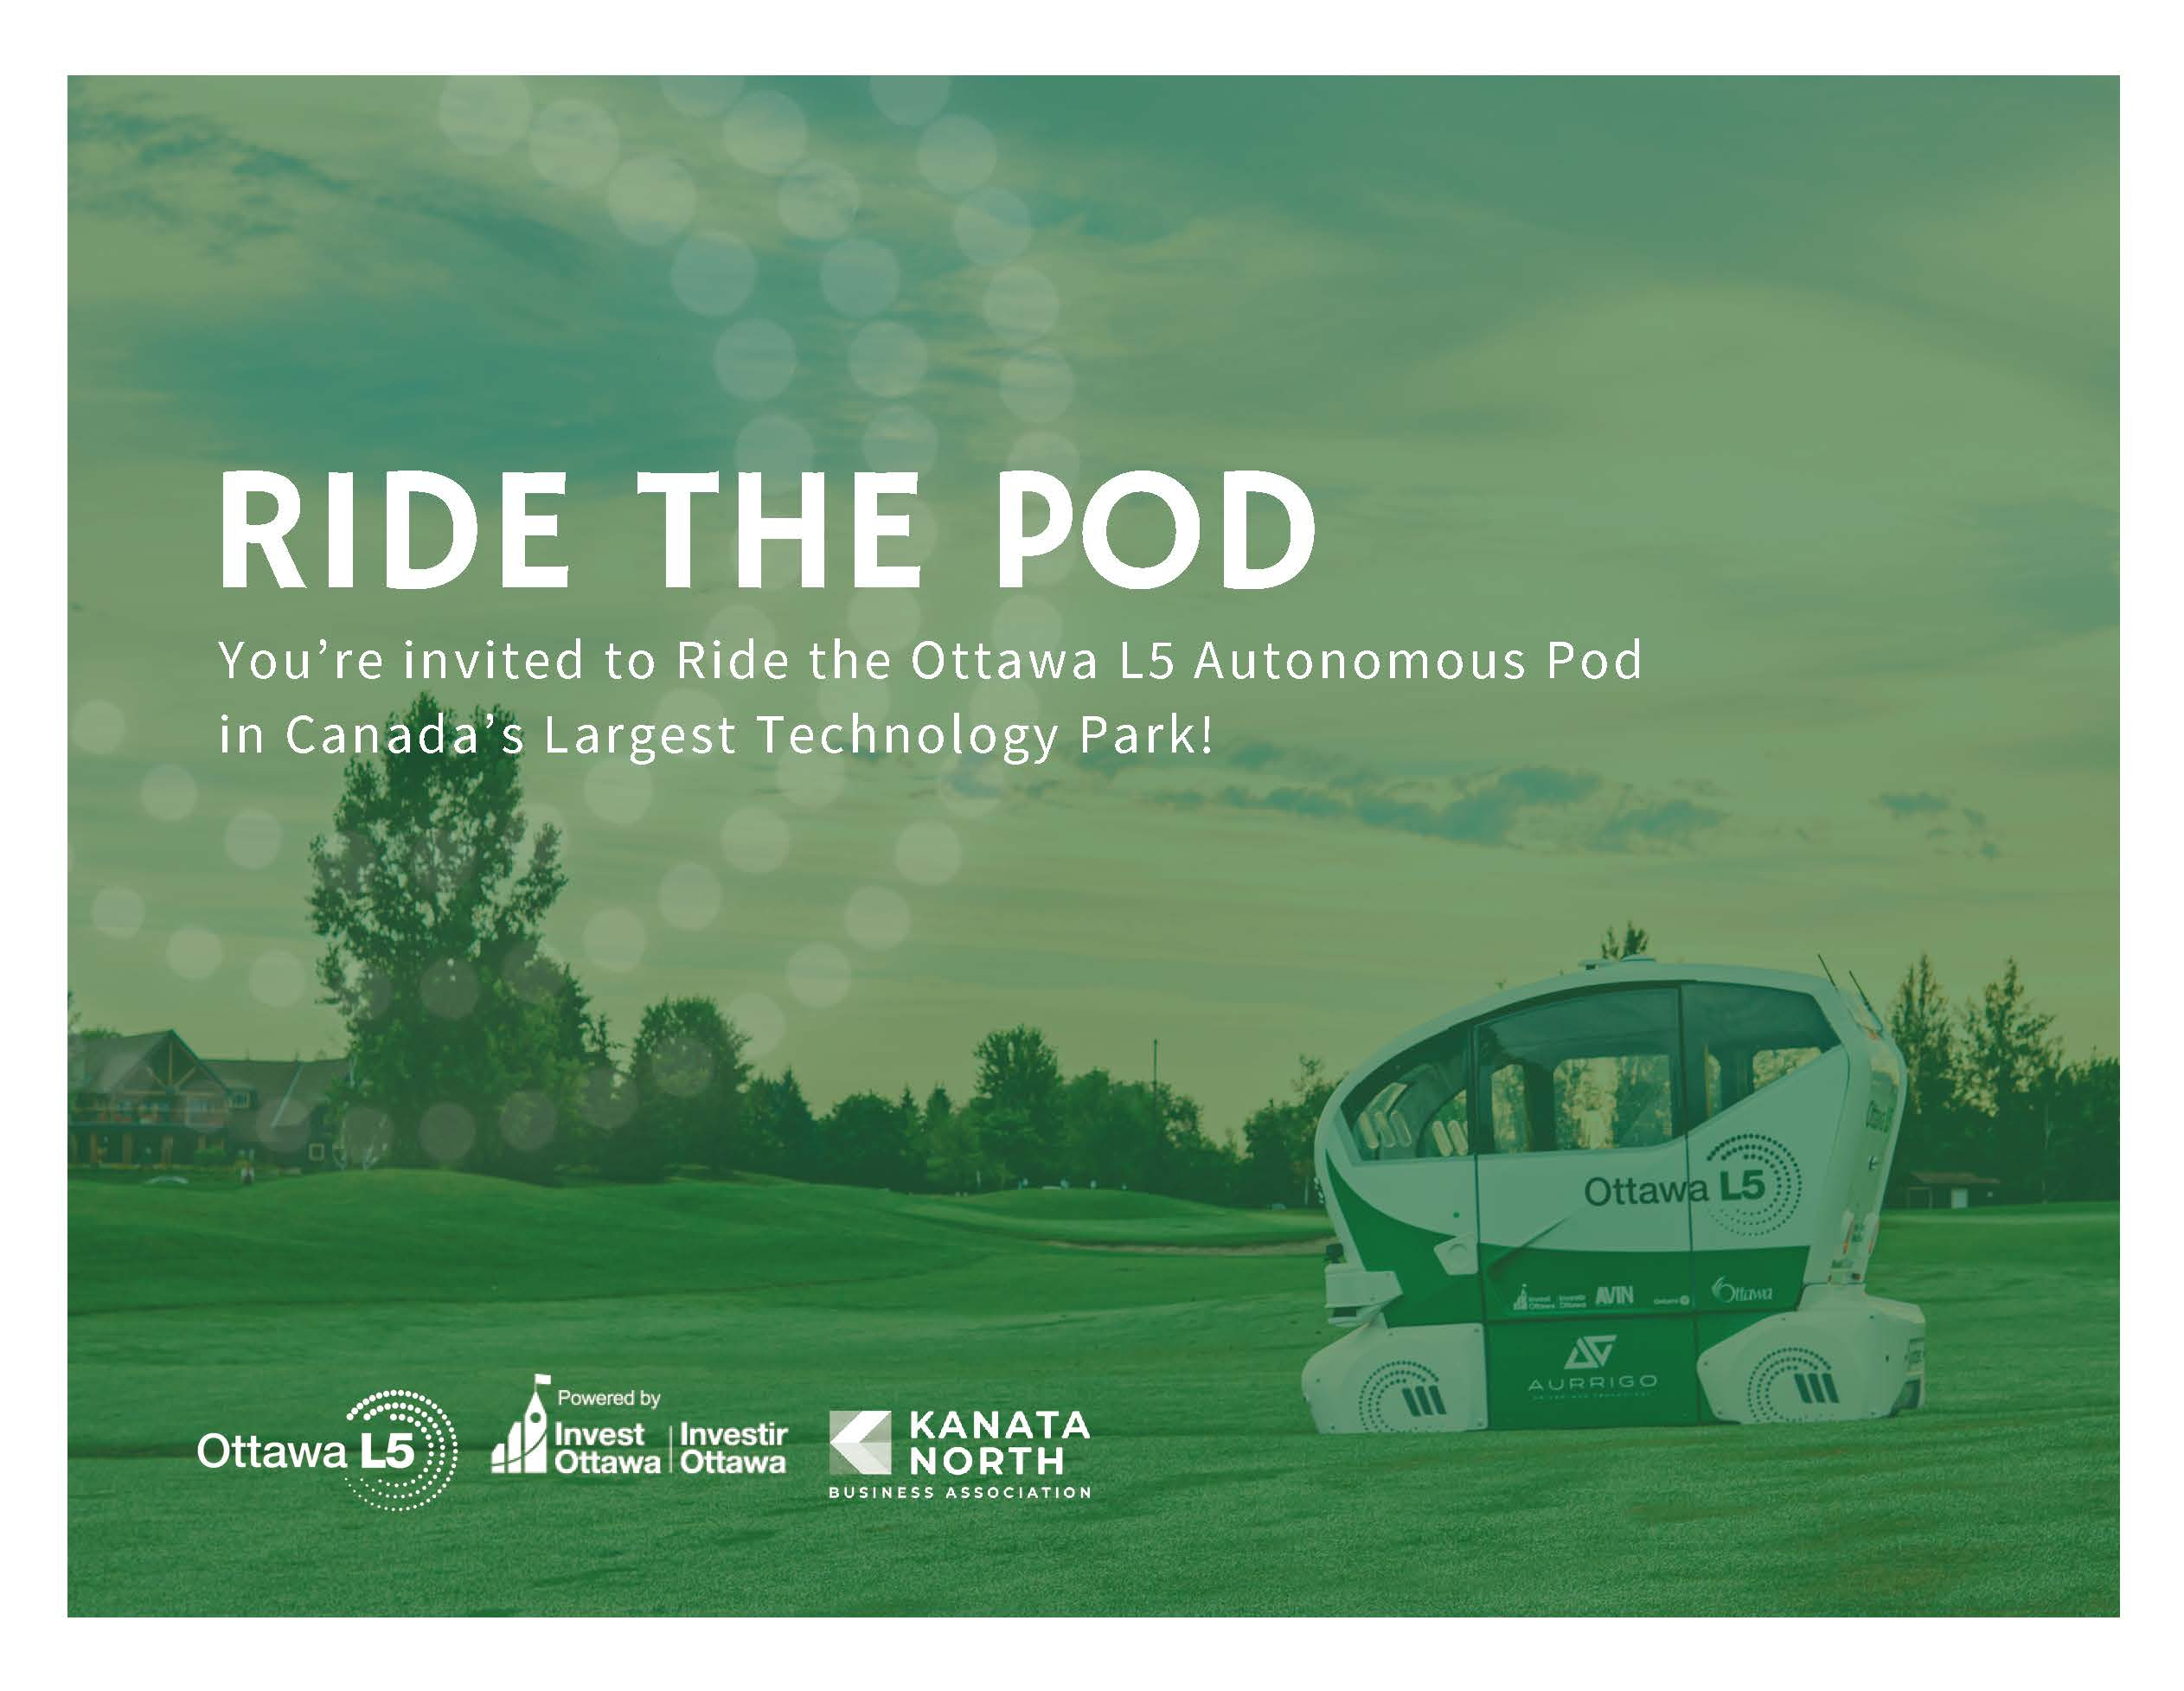 RidethePod_Launch invite_Final_Page_1.jp